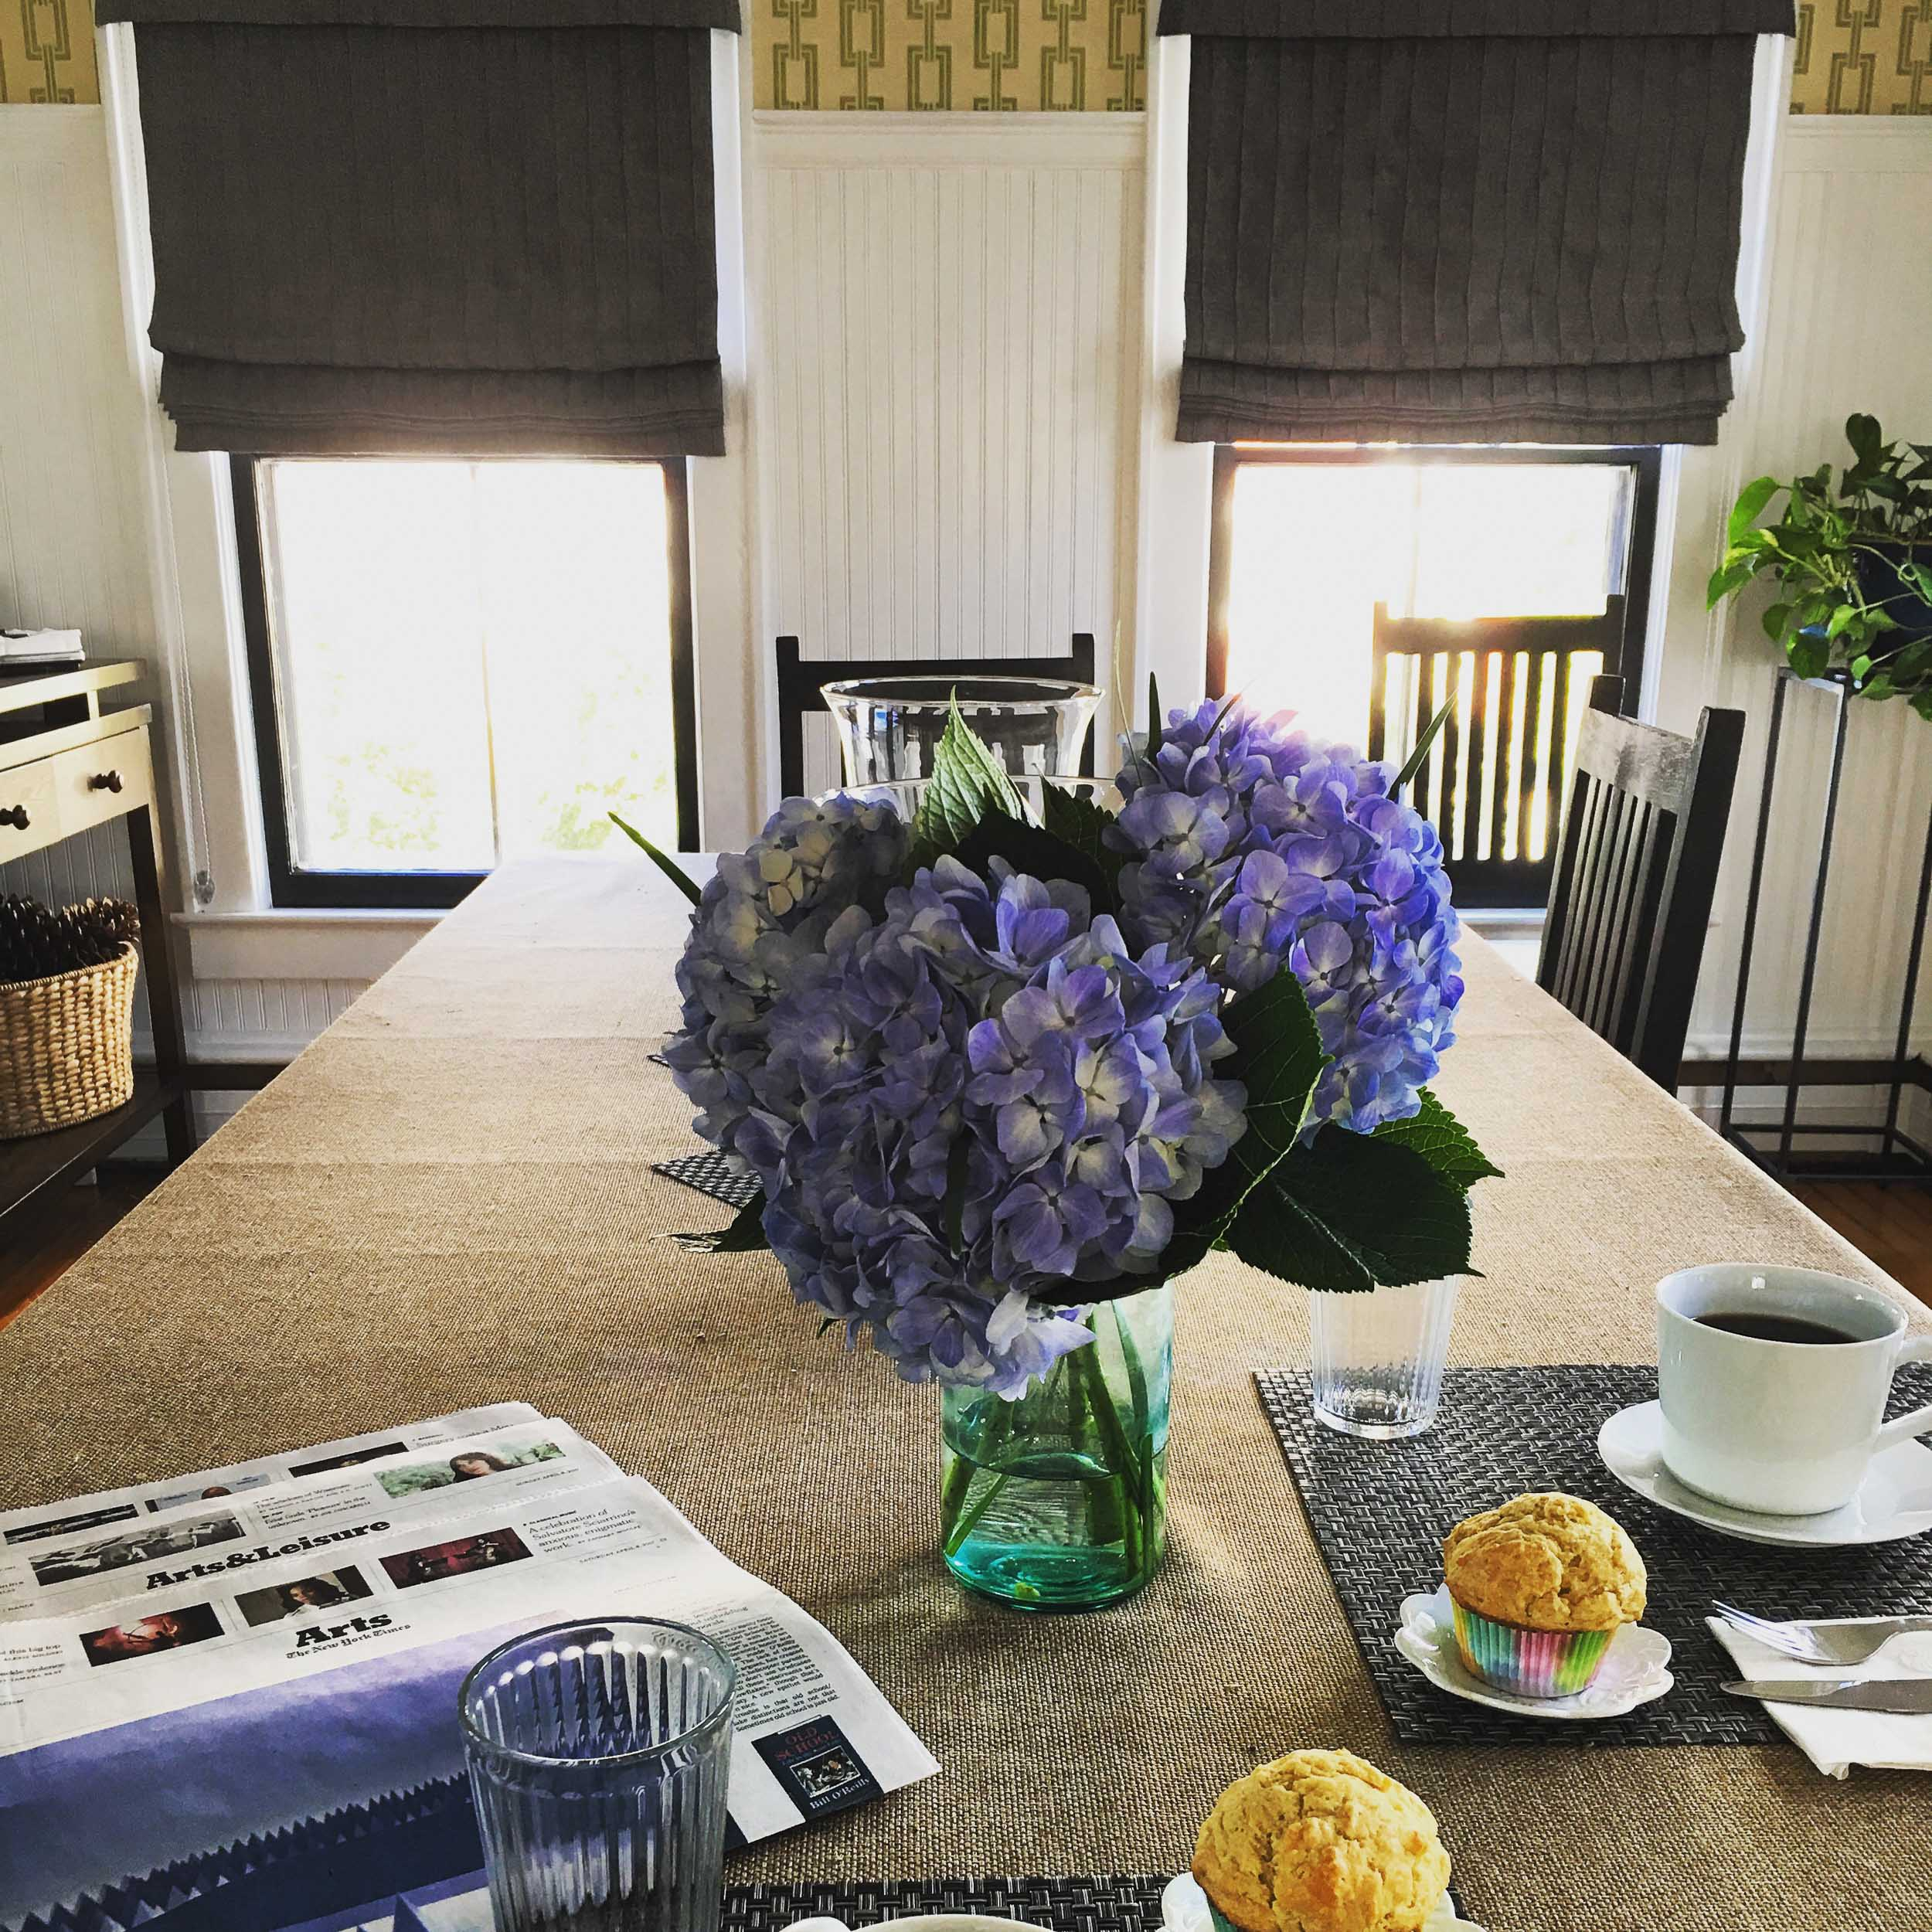 Breakfast setting hydrangea new york times paper.jpg